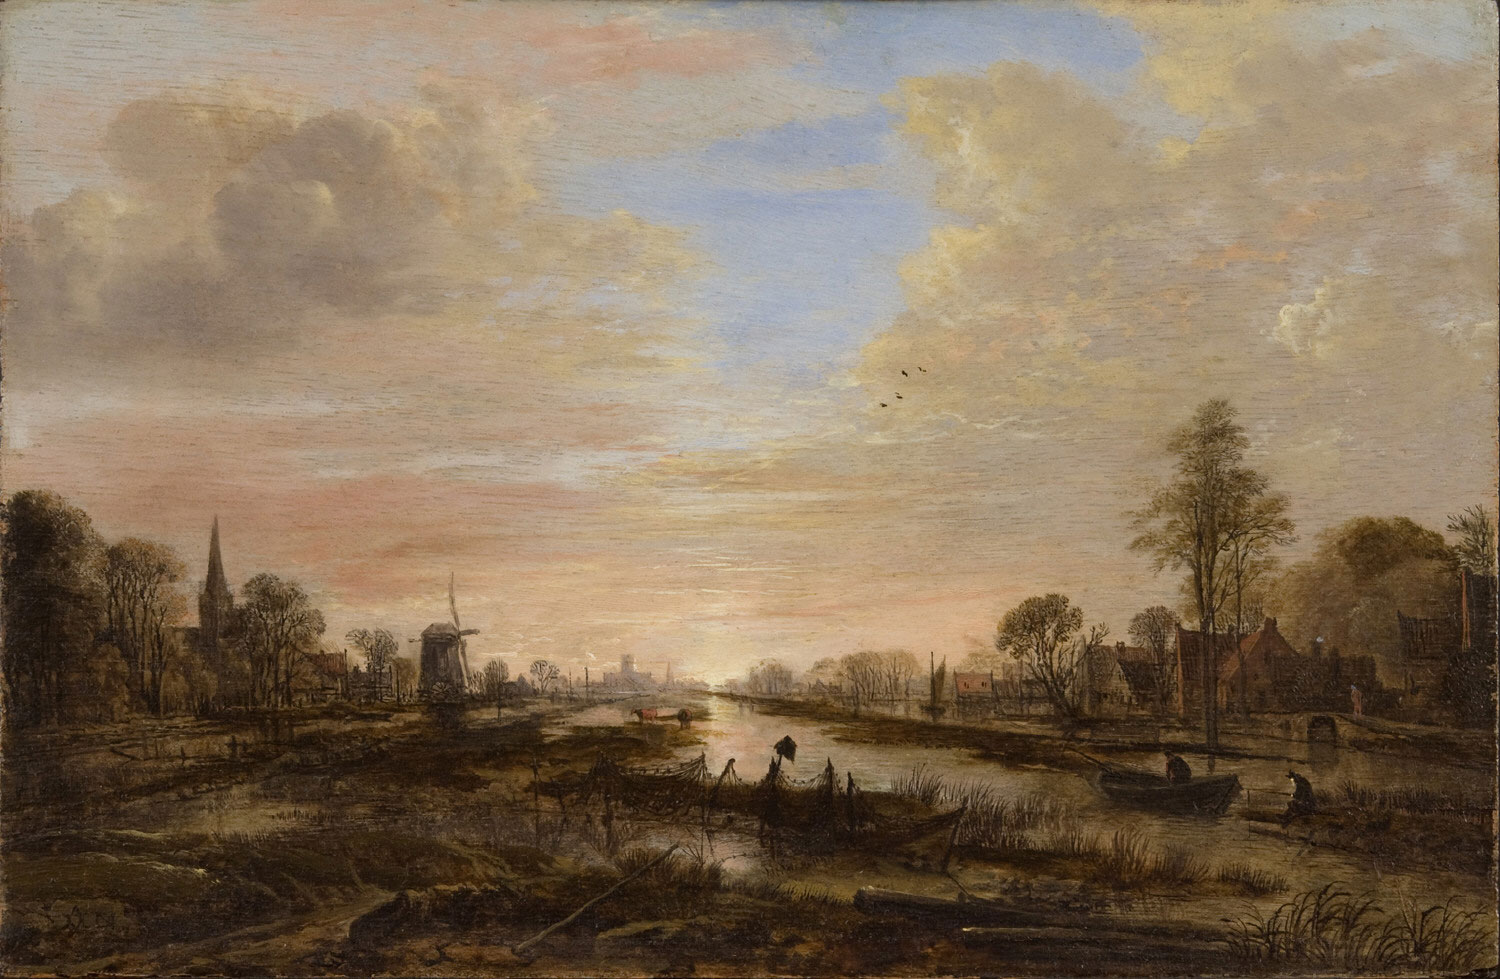 Landscape with a River at Twilight